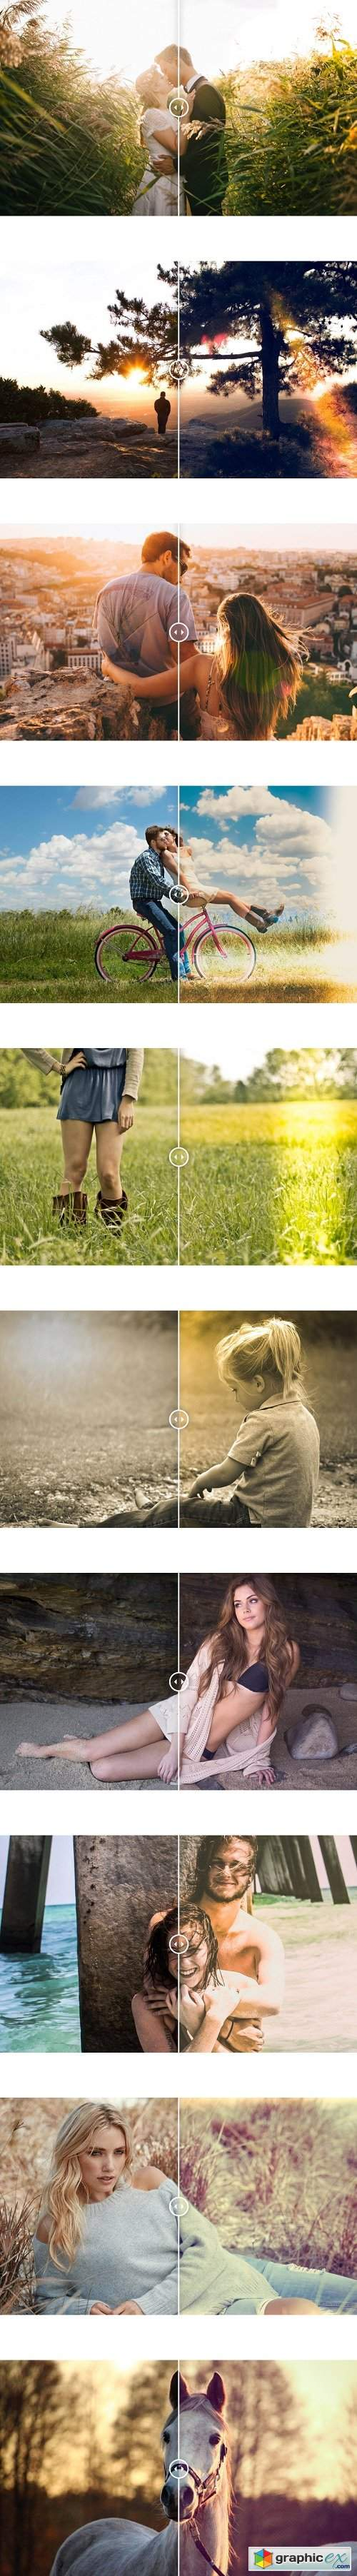 Photonify - Light Leaks Collection Lightroom Presets